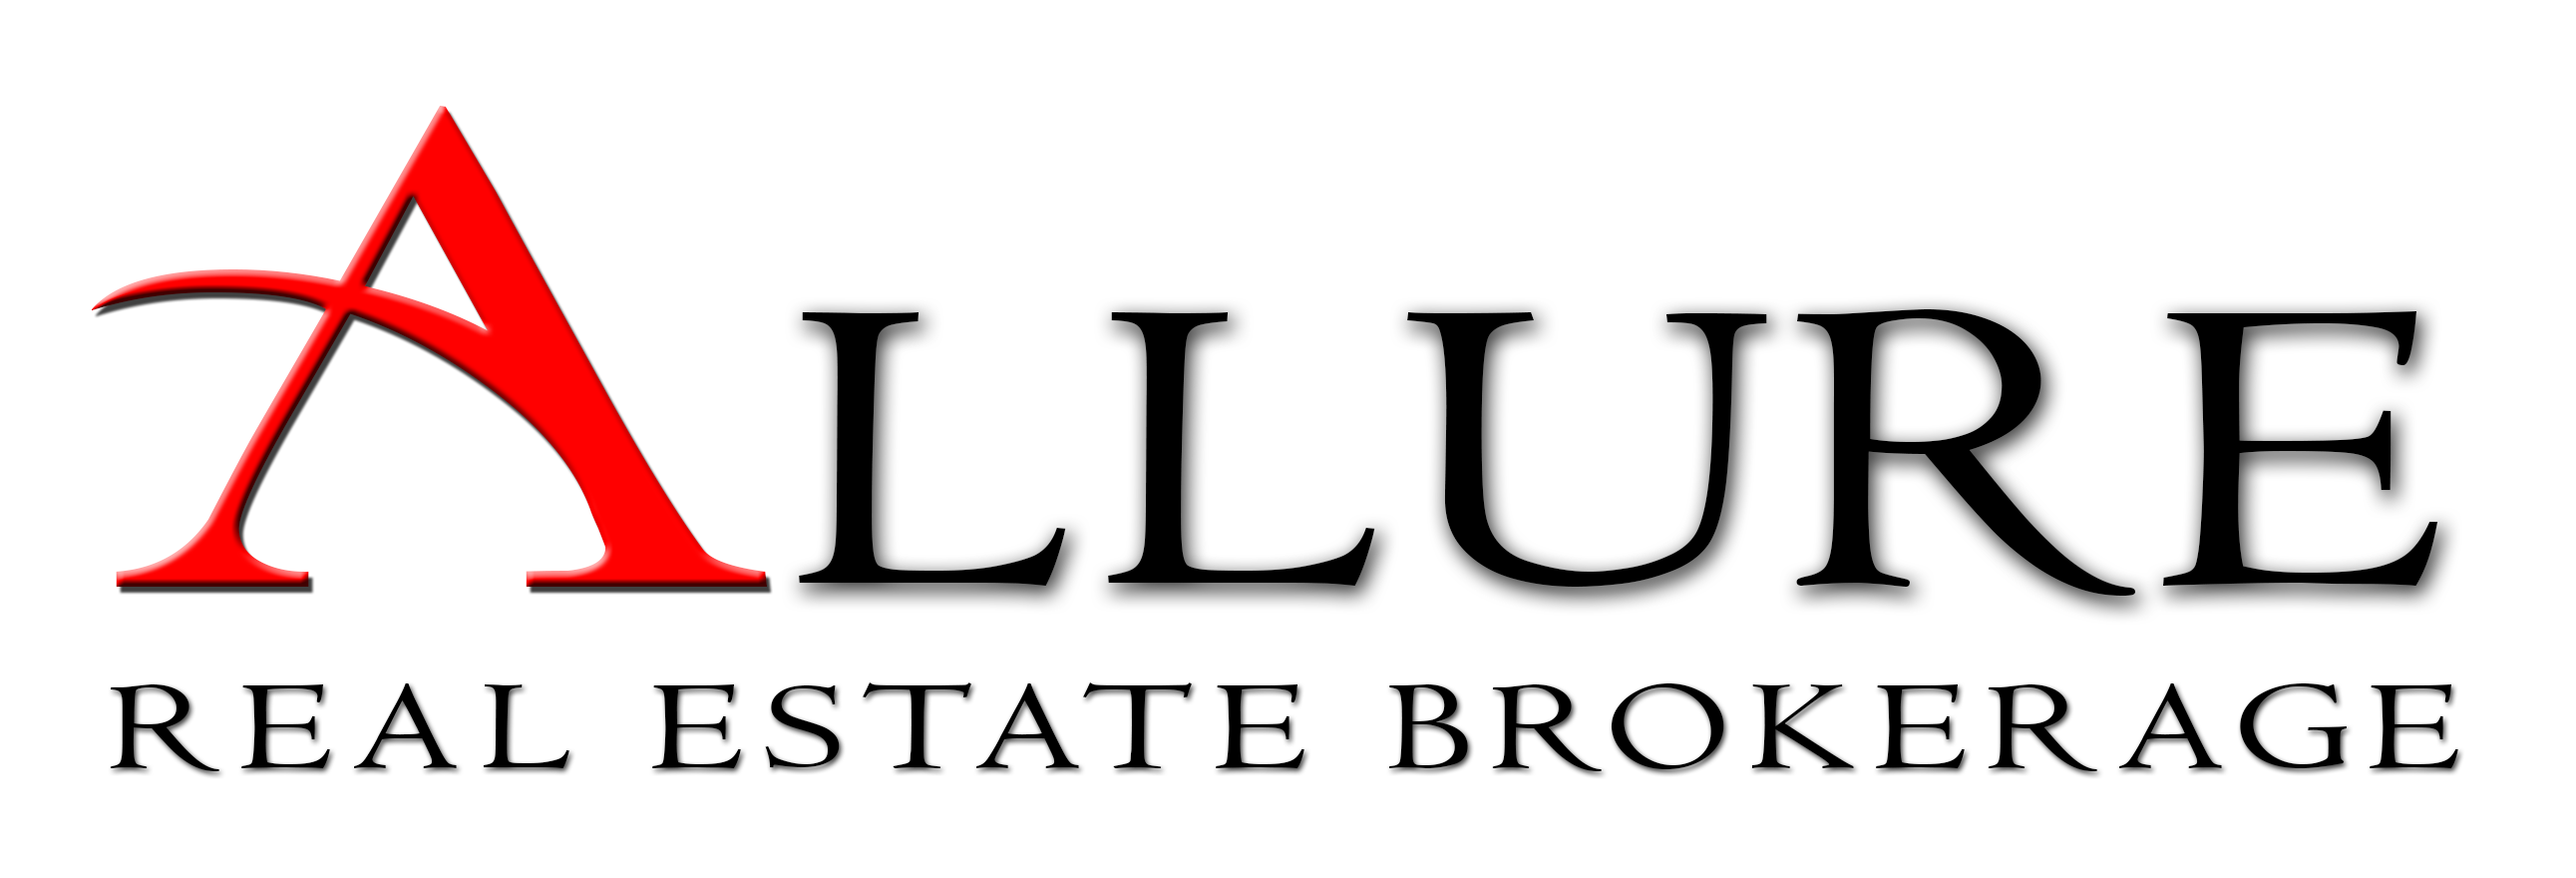 Houston- Allure Real Estate Brokerage